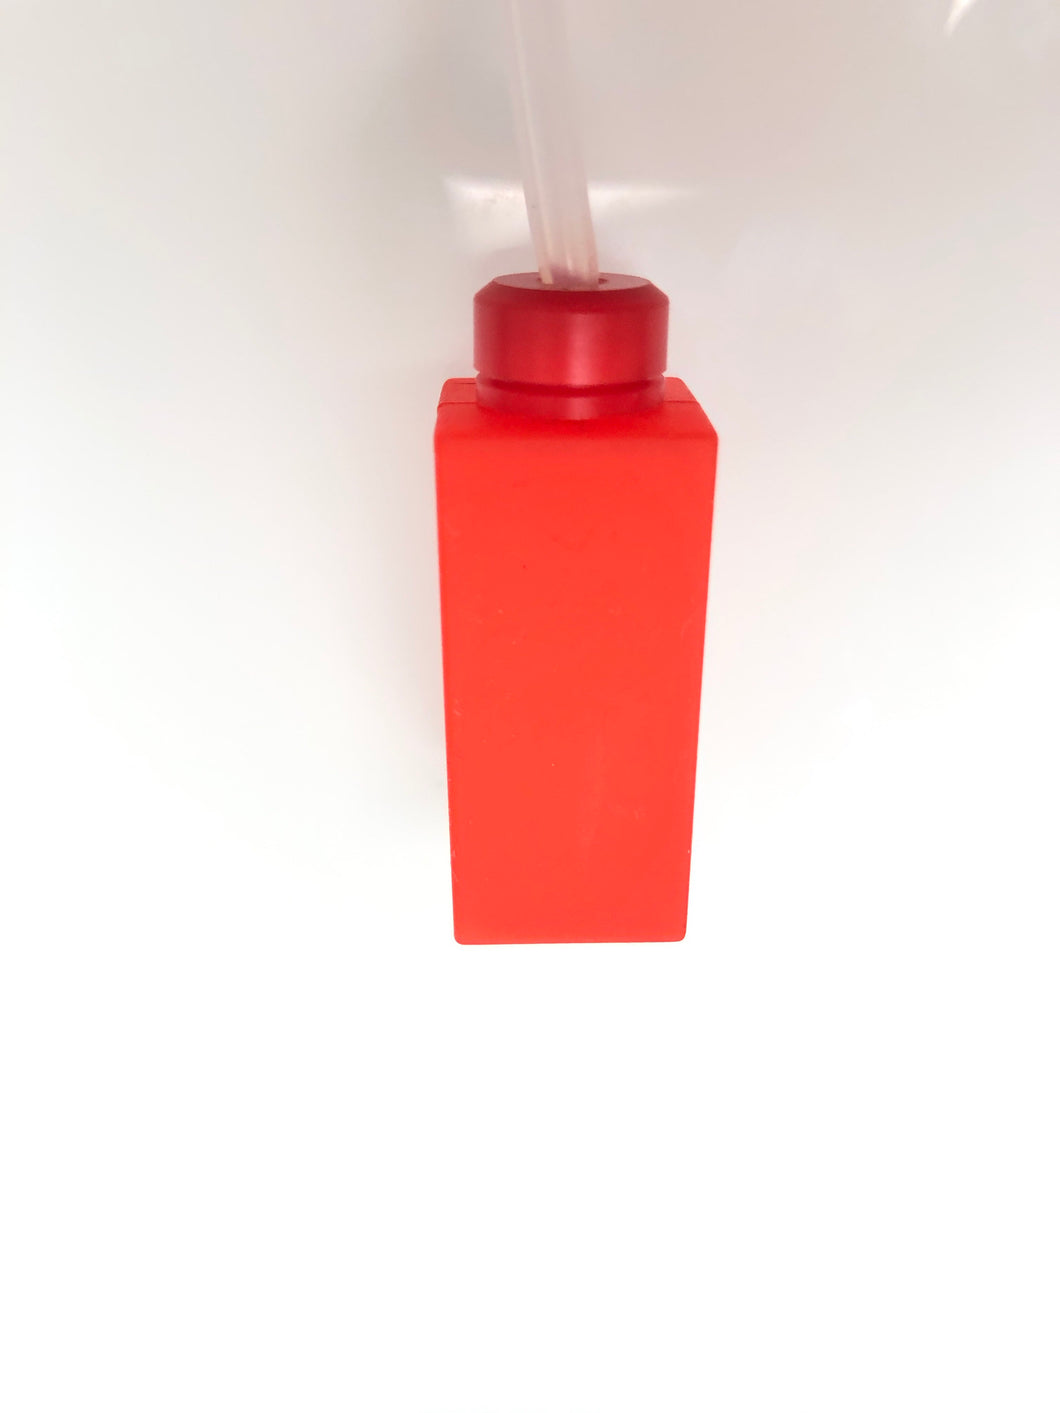 Red Alert Square'd bottle with red cap